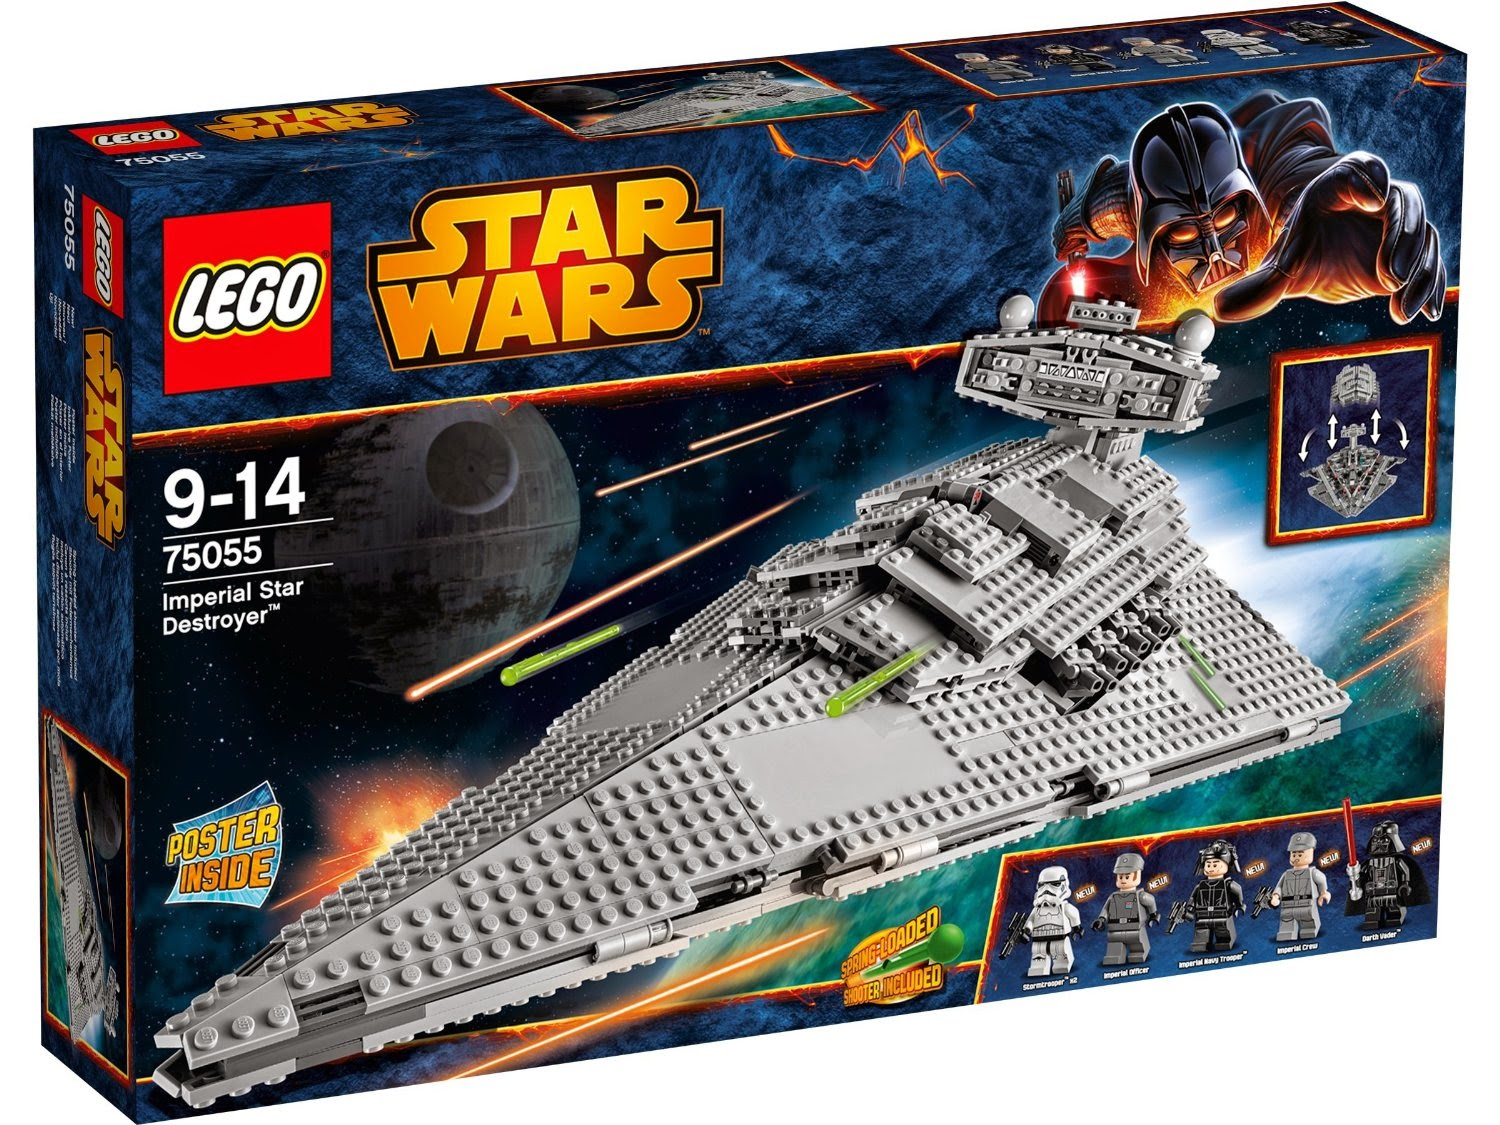 Caja Lego Star Wars de la nave destructor imperial